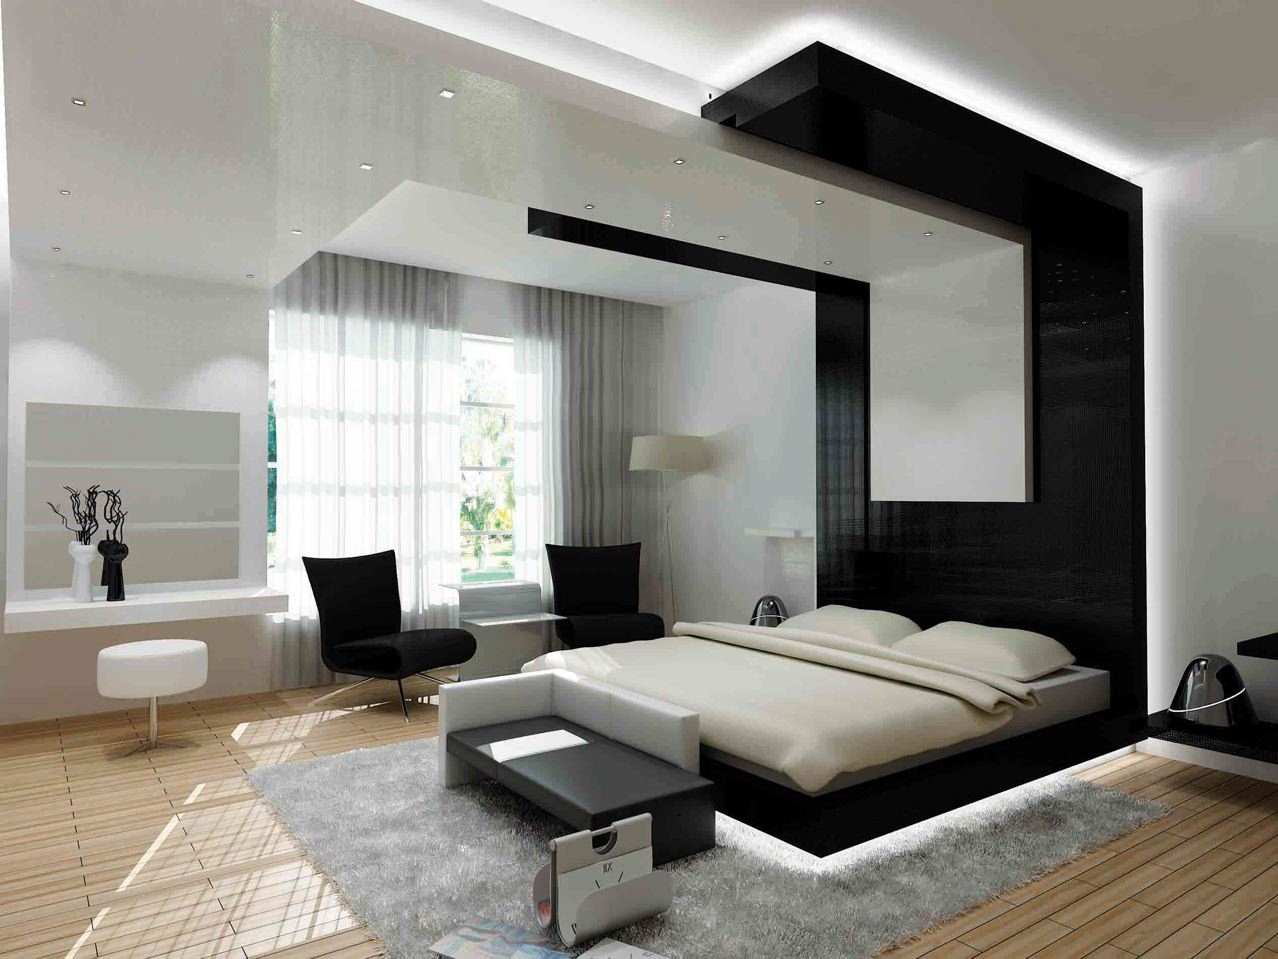 25 bedroom design ideas for your home - Ideas Bedroom Design